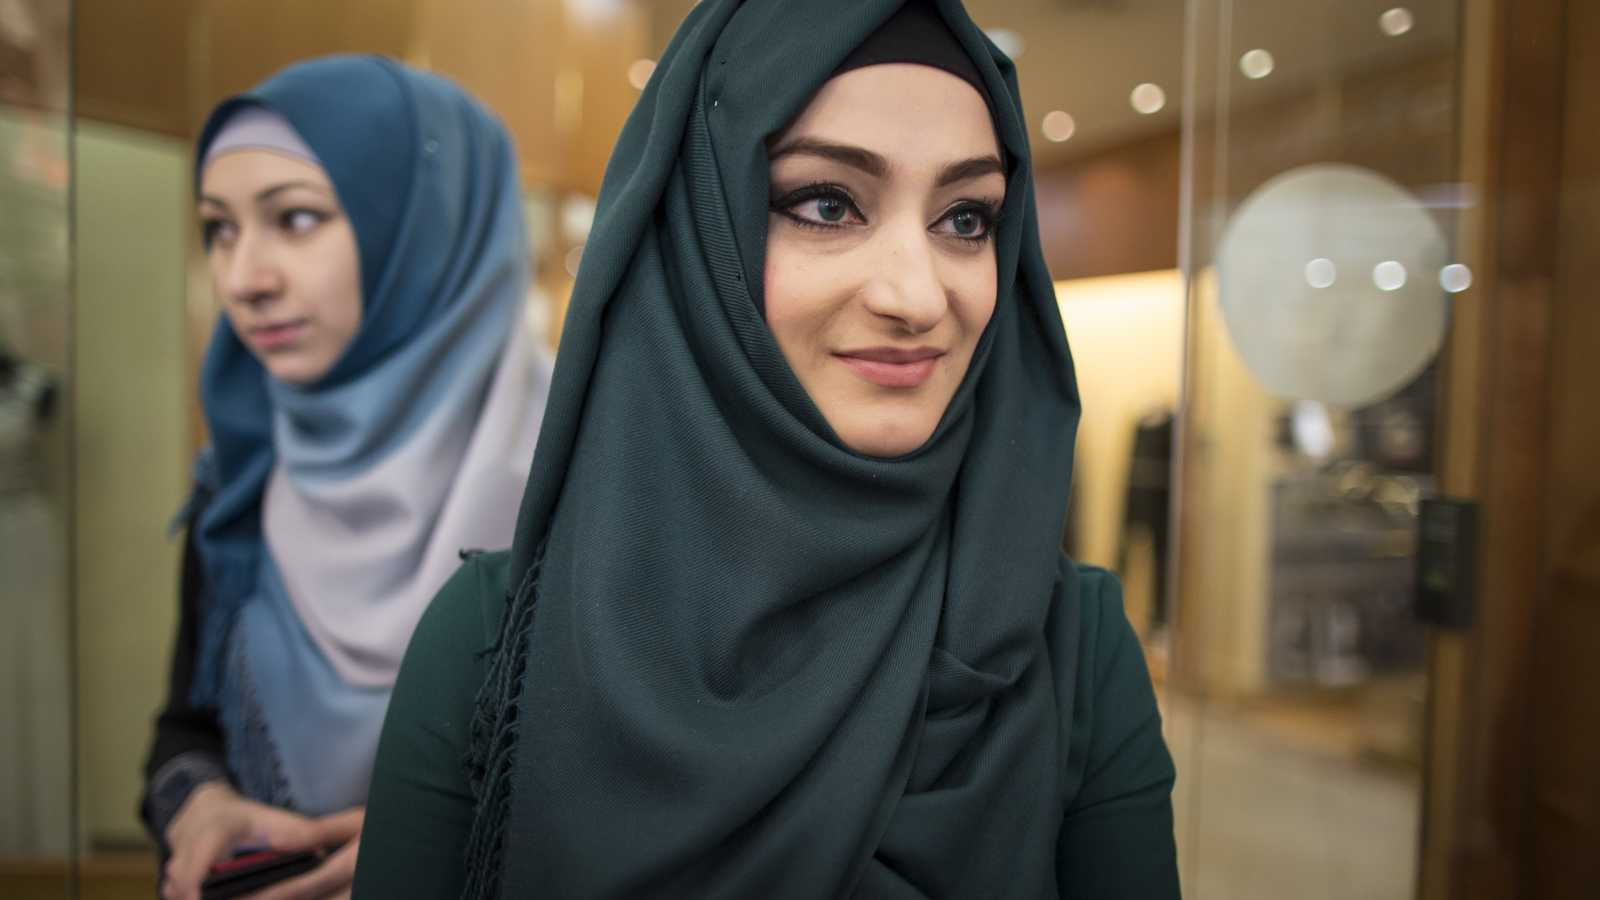 daviston muslim women dating site As muslim singles in the us know all too well, life only gets busier and more complicated with age between work, friends, family and faith, there's little time left for finding love as the leading site for professional singles , elitesingles caters well for those with a hectic schedule.